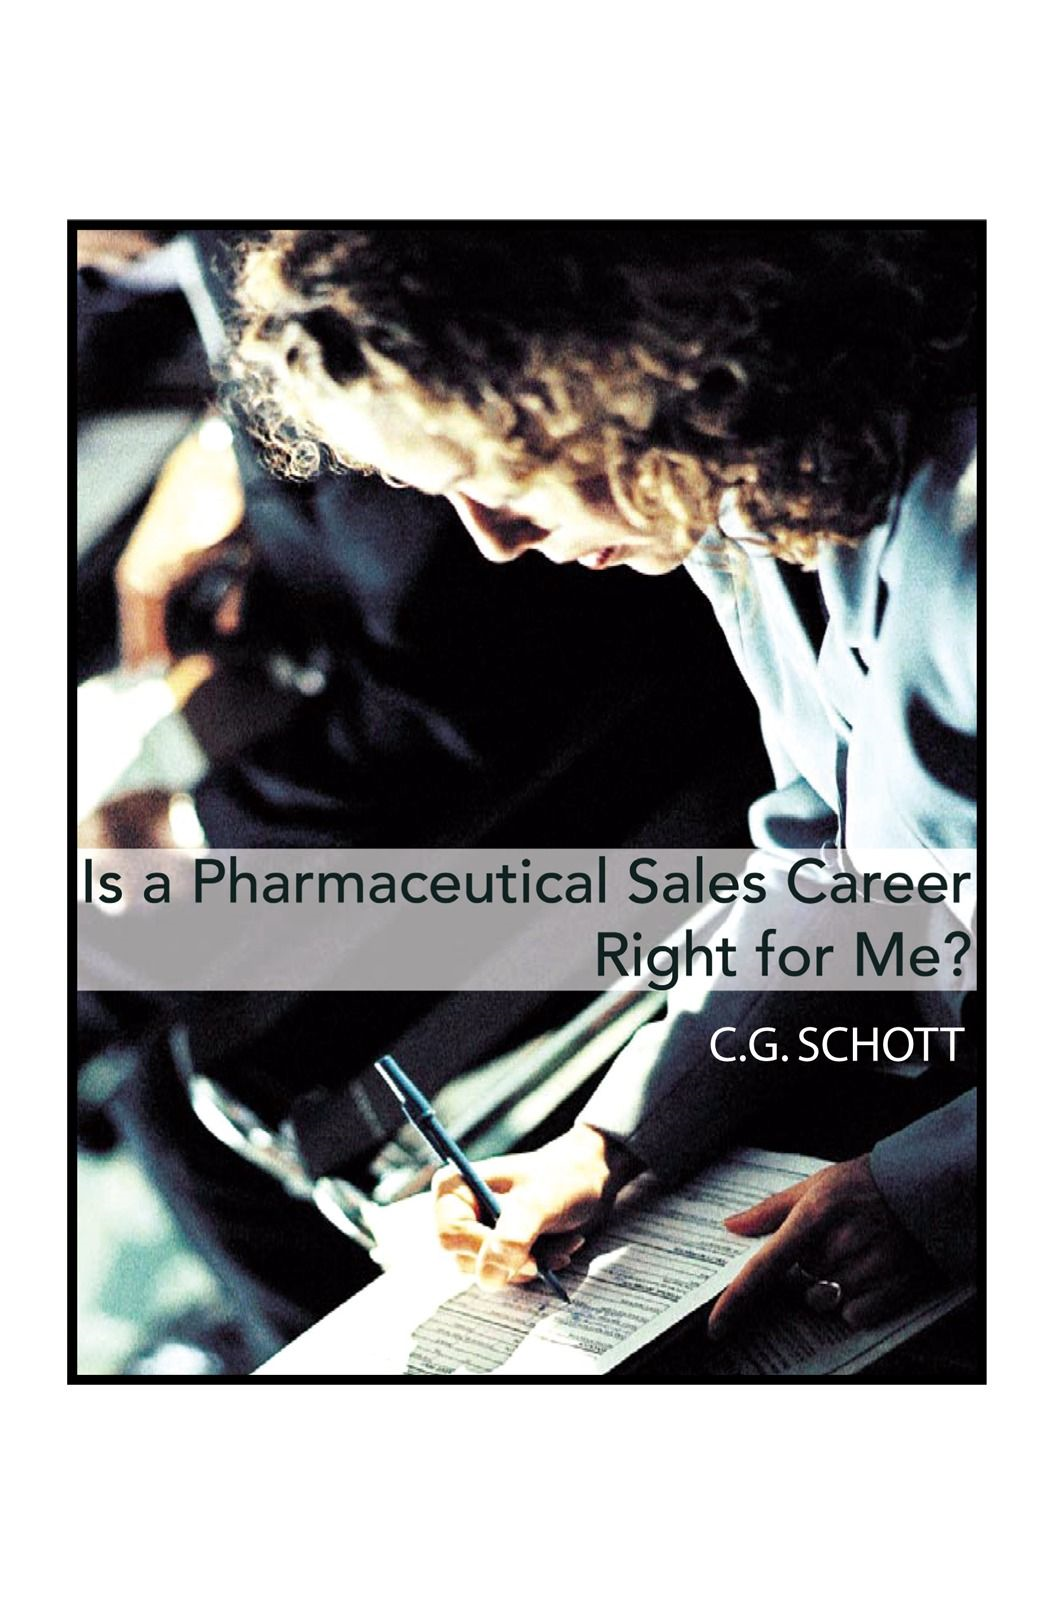 Is a Pharmaceutical Sales Career Right For Me?  By: C.G. Schott